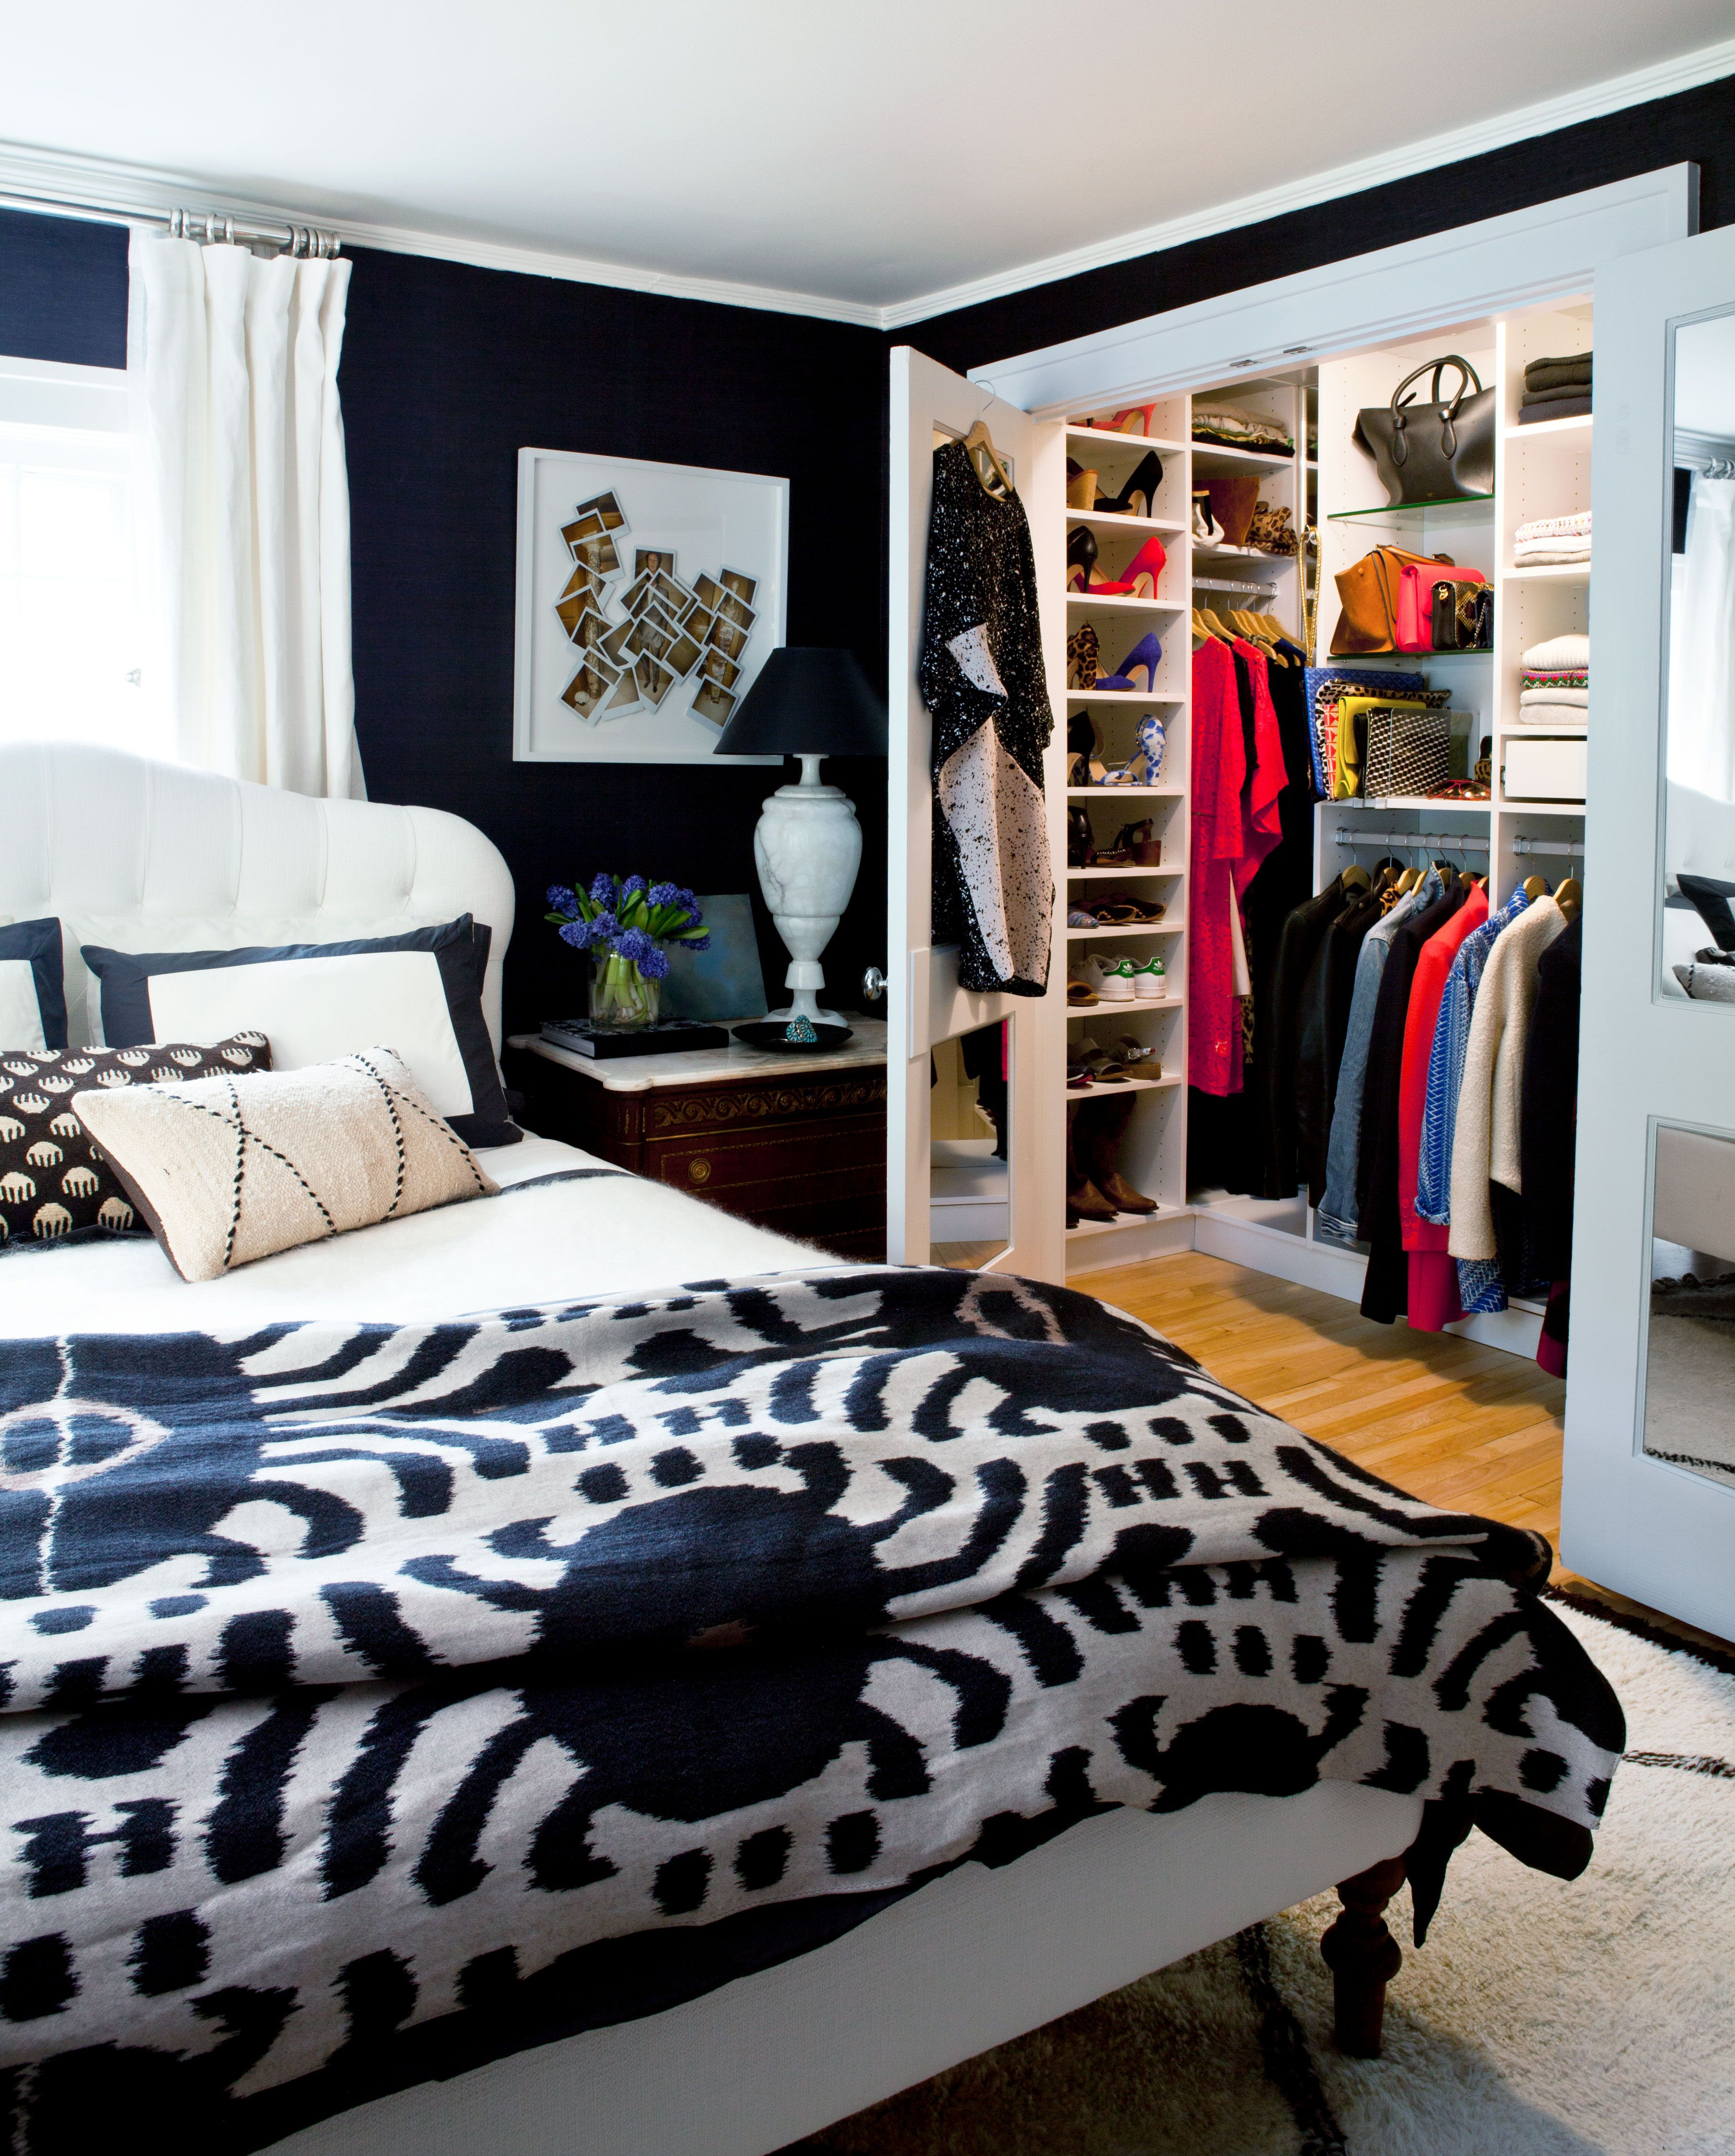 No curtains, sheers, blinds or drapery? 10 Stylish Black Bedroom Ideas How To Decorate A Black Bedroom